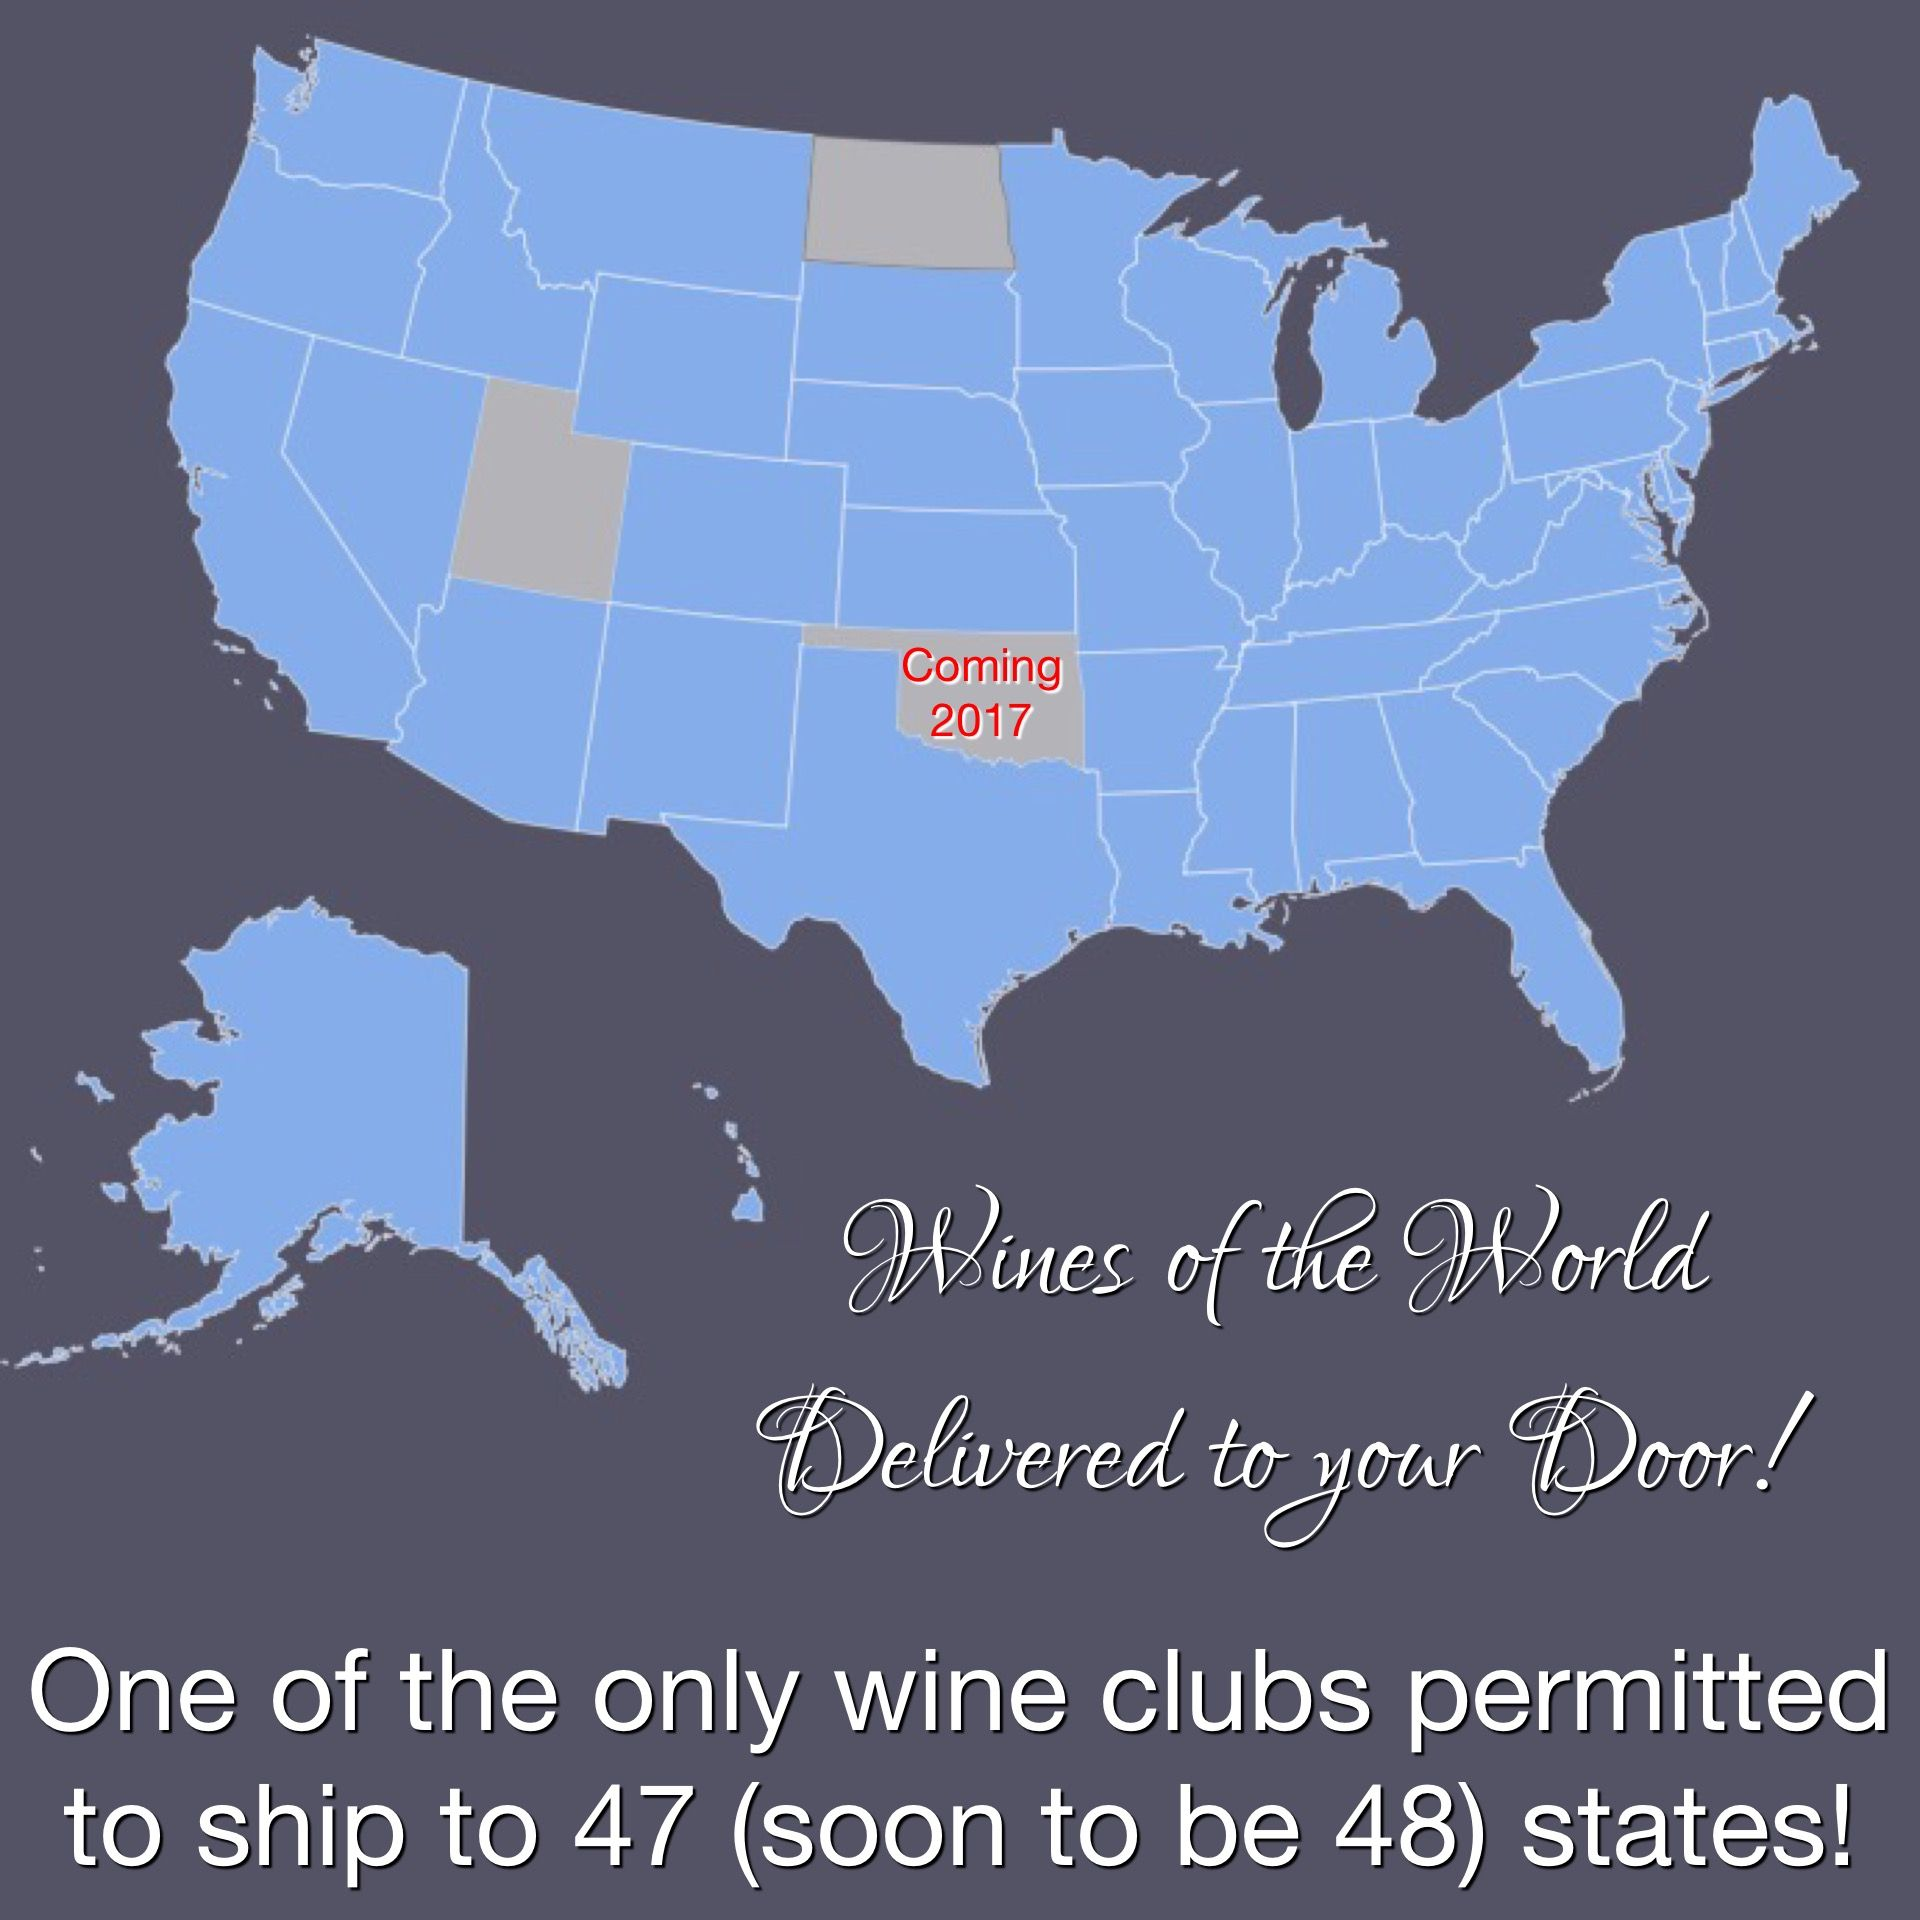 We are one of the ONLY wine tasting clubs that can ship to 47/50 states!  #wine #delivered #directcellars